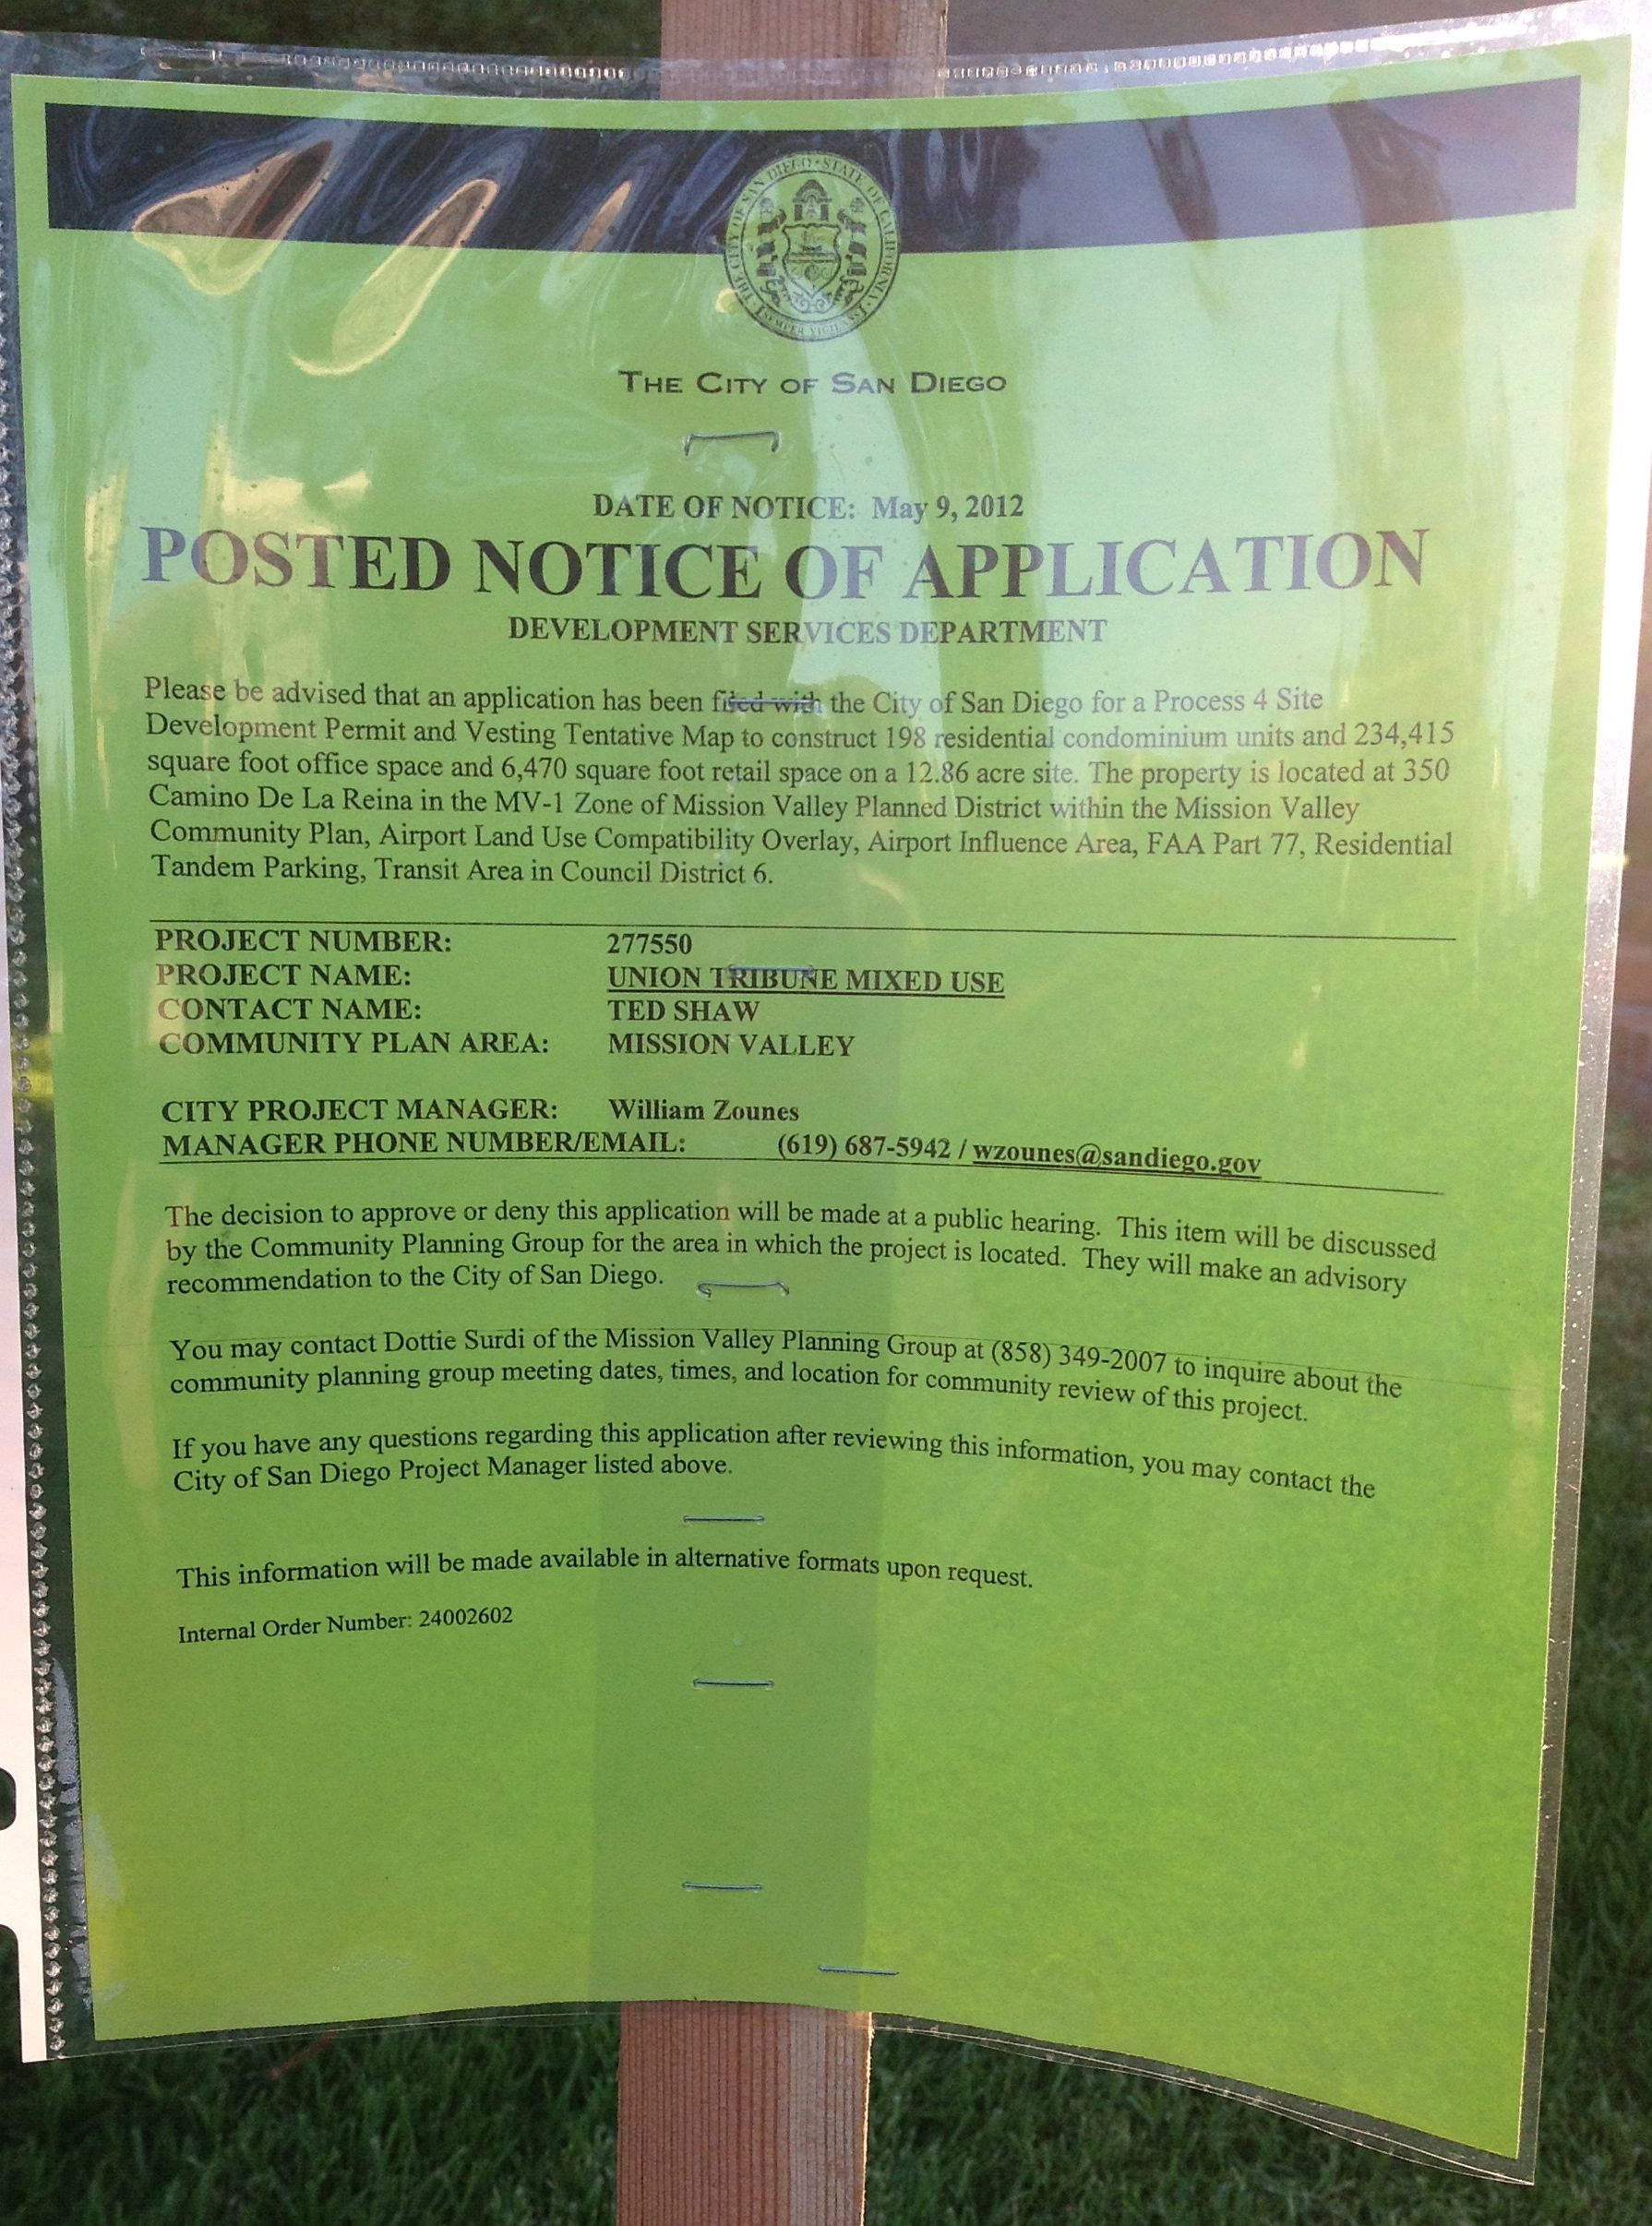 Notice posted on the front lawn of the Union-Tribune